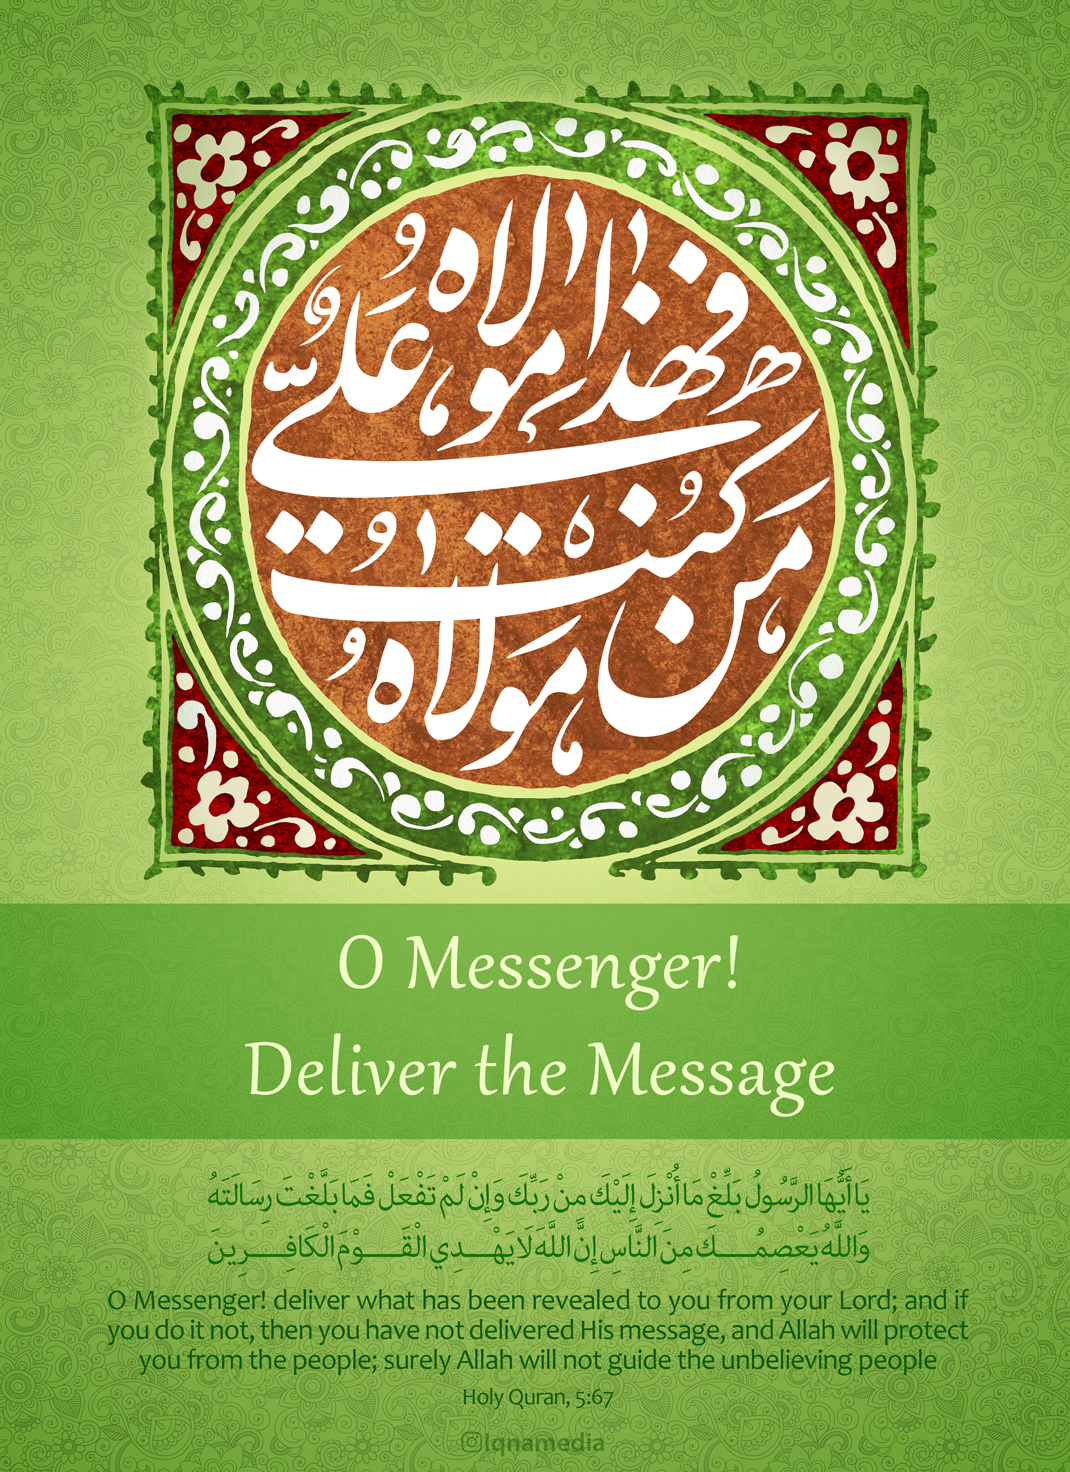 O Messenger! Deliver the Message